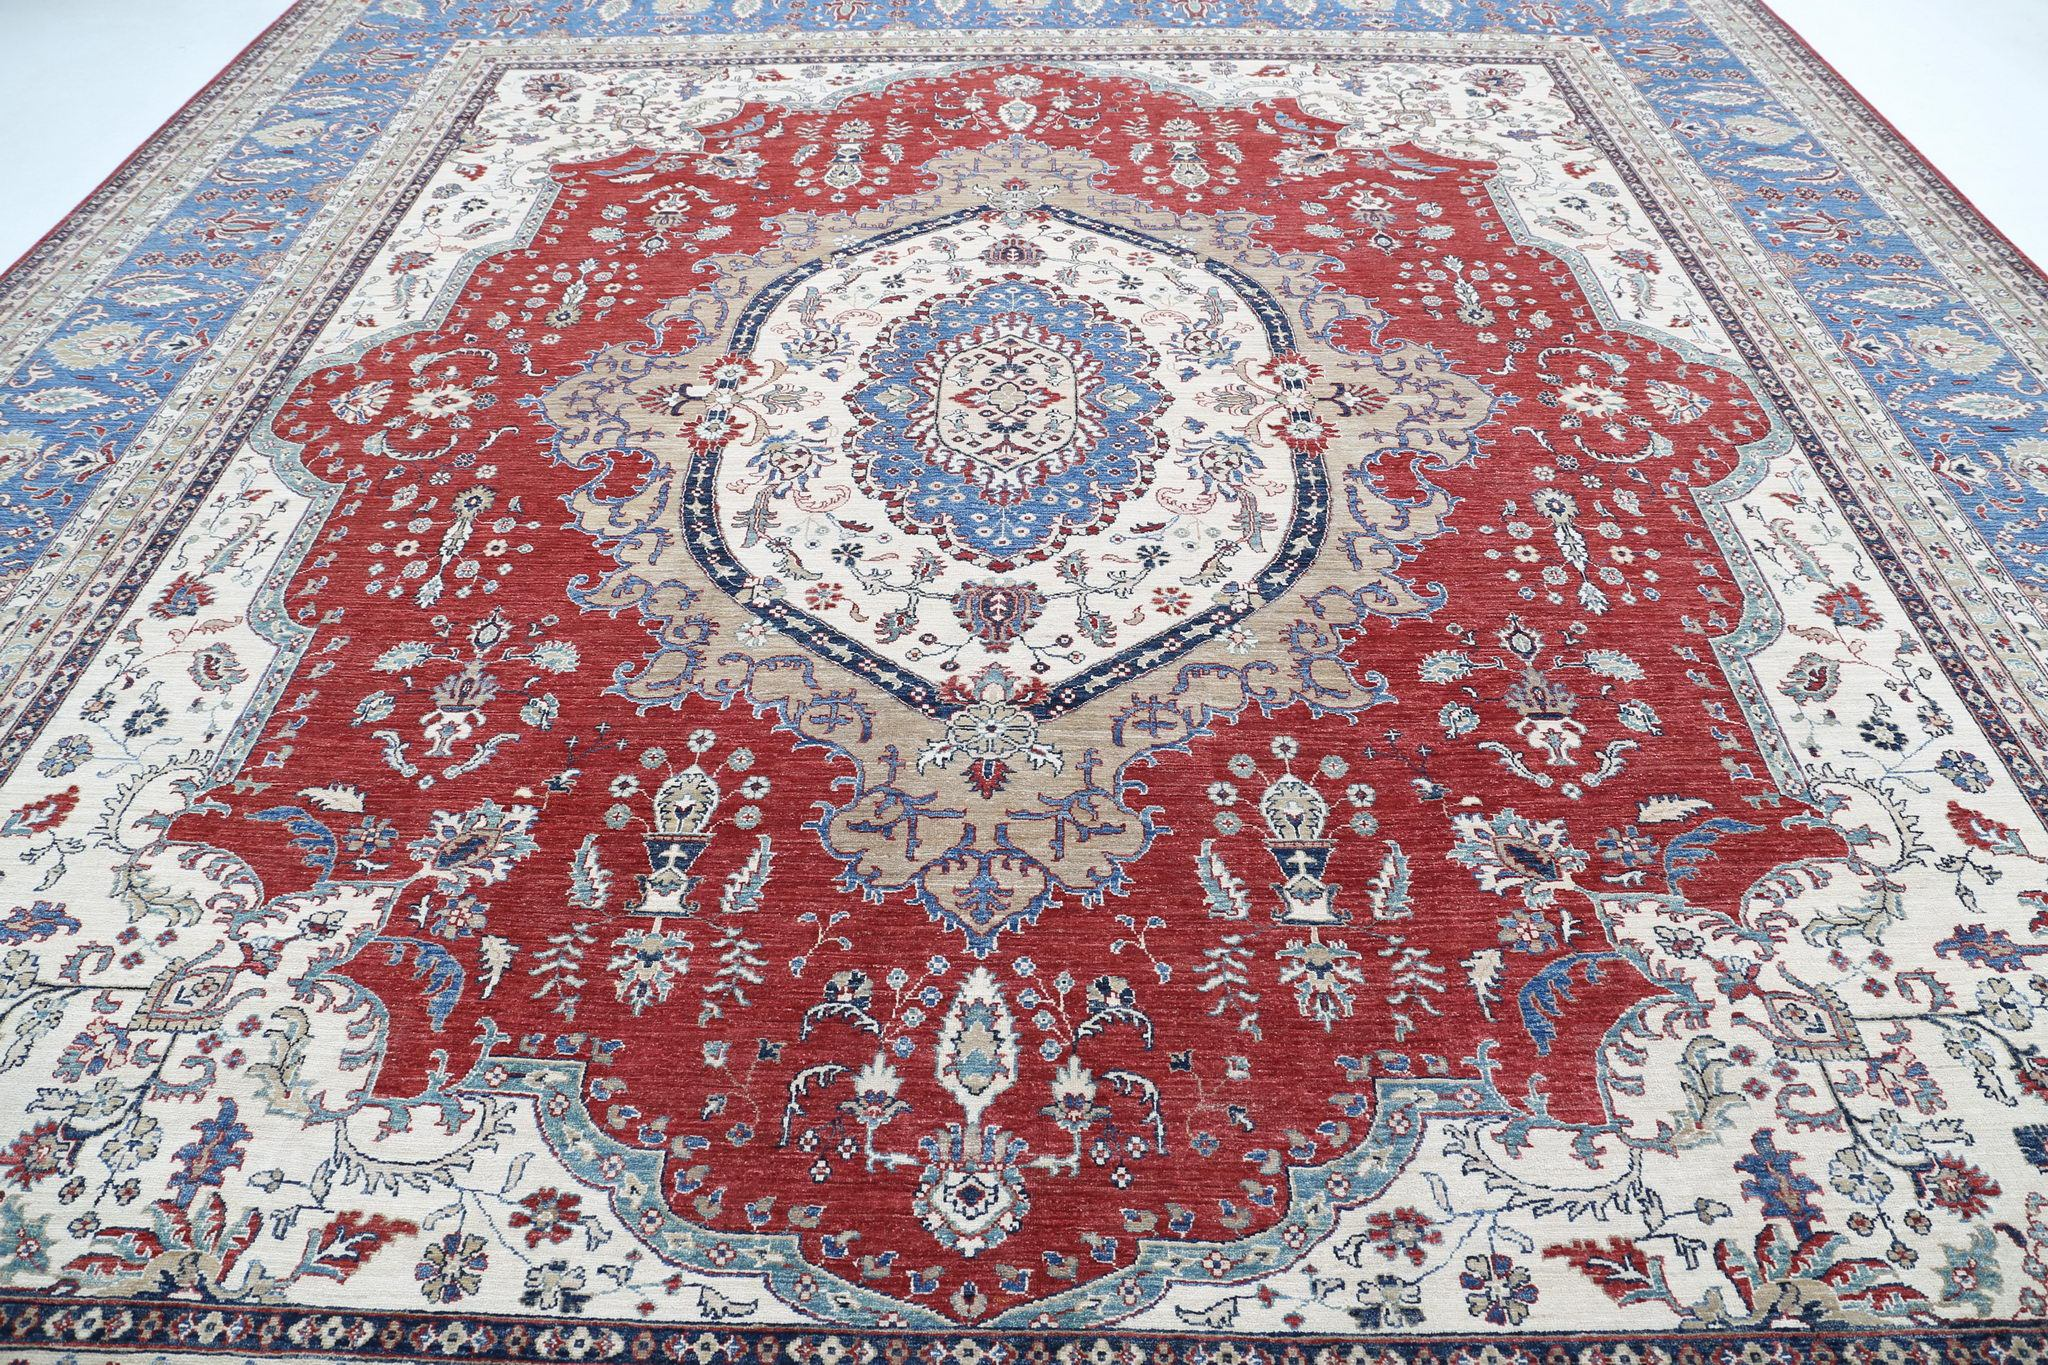 Handmade Rugs, Large Vintage Rugs, Oversized Rugs by Carpet Culture